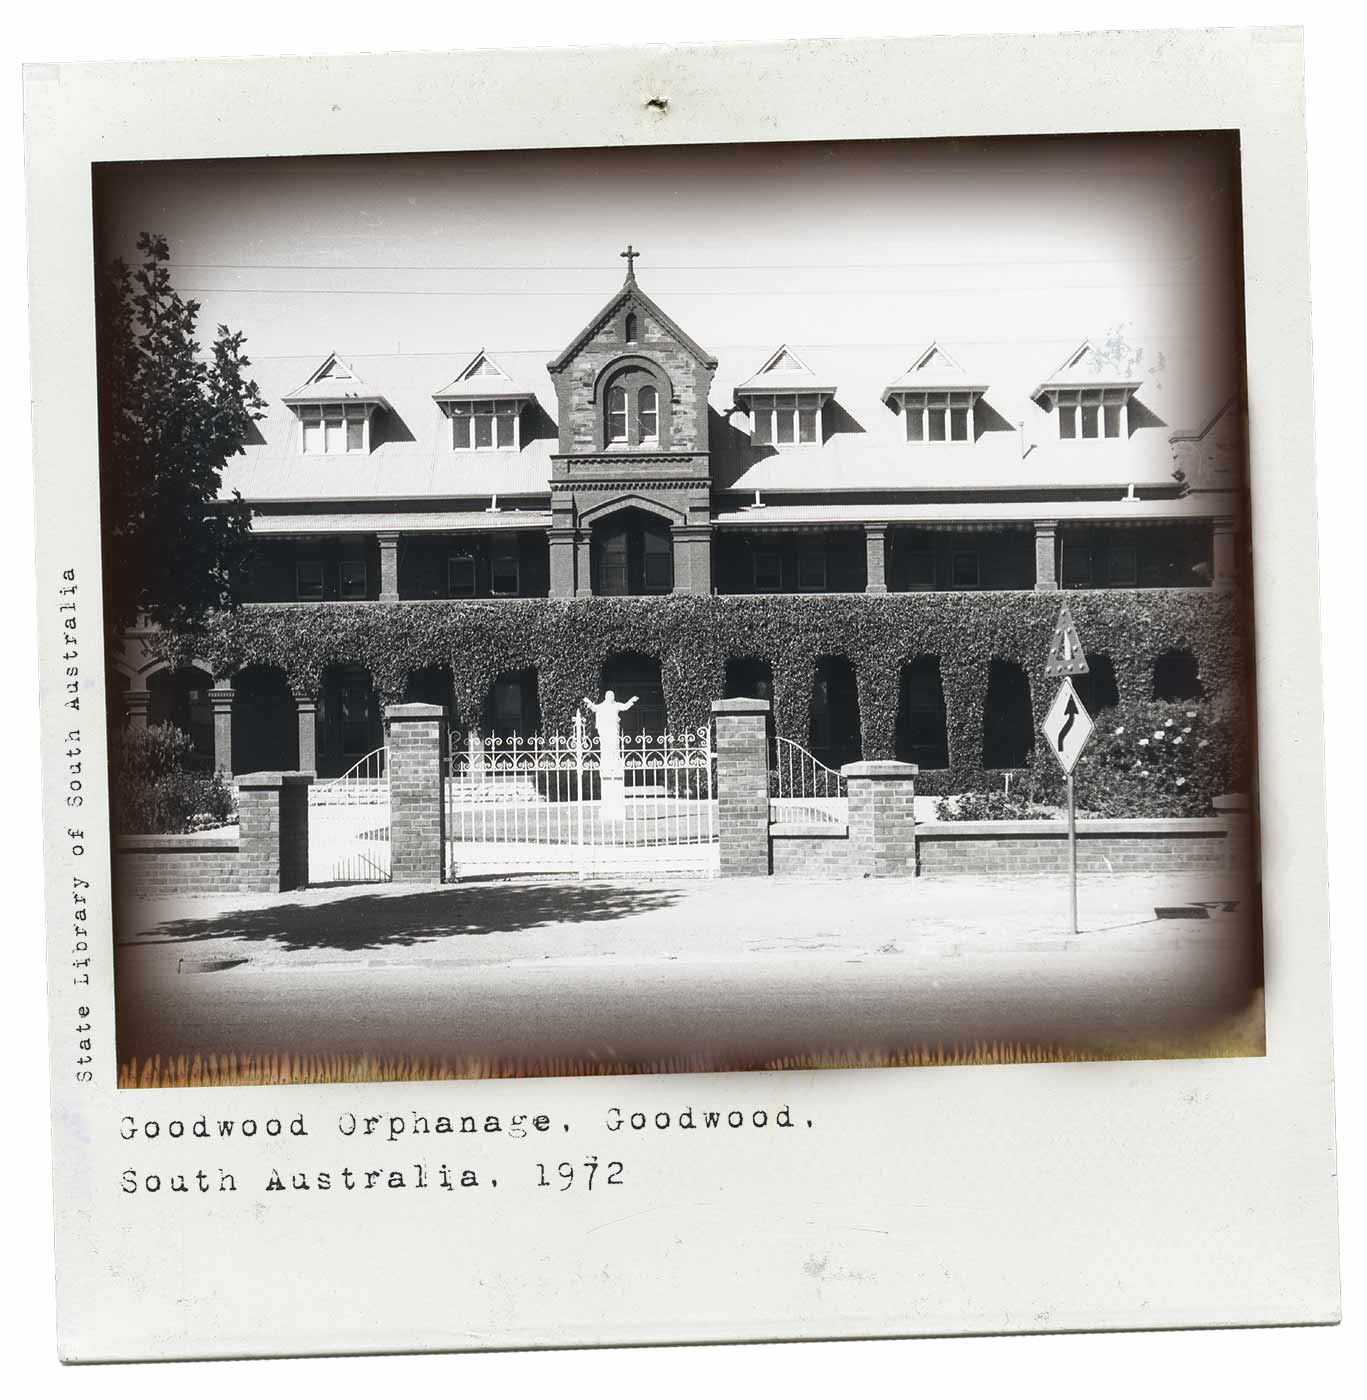 A black and white Polaroid photograph of a large building appearing to be of mid-1800s heritage. There is a white statue behind the main gate and a traffic sign to the right. Typewritten text underneath reads: 'Goodwood Orphanage. Goodwood. South Australia. 1972'. Up the left-hand side of the photo there is smaller text reading 'State Library of South Australia'. - click to view larger image